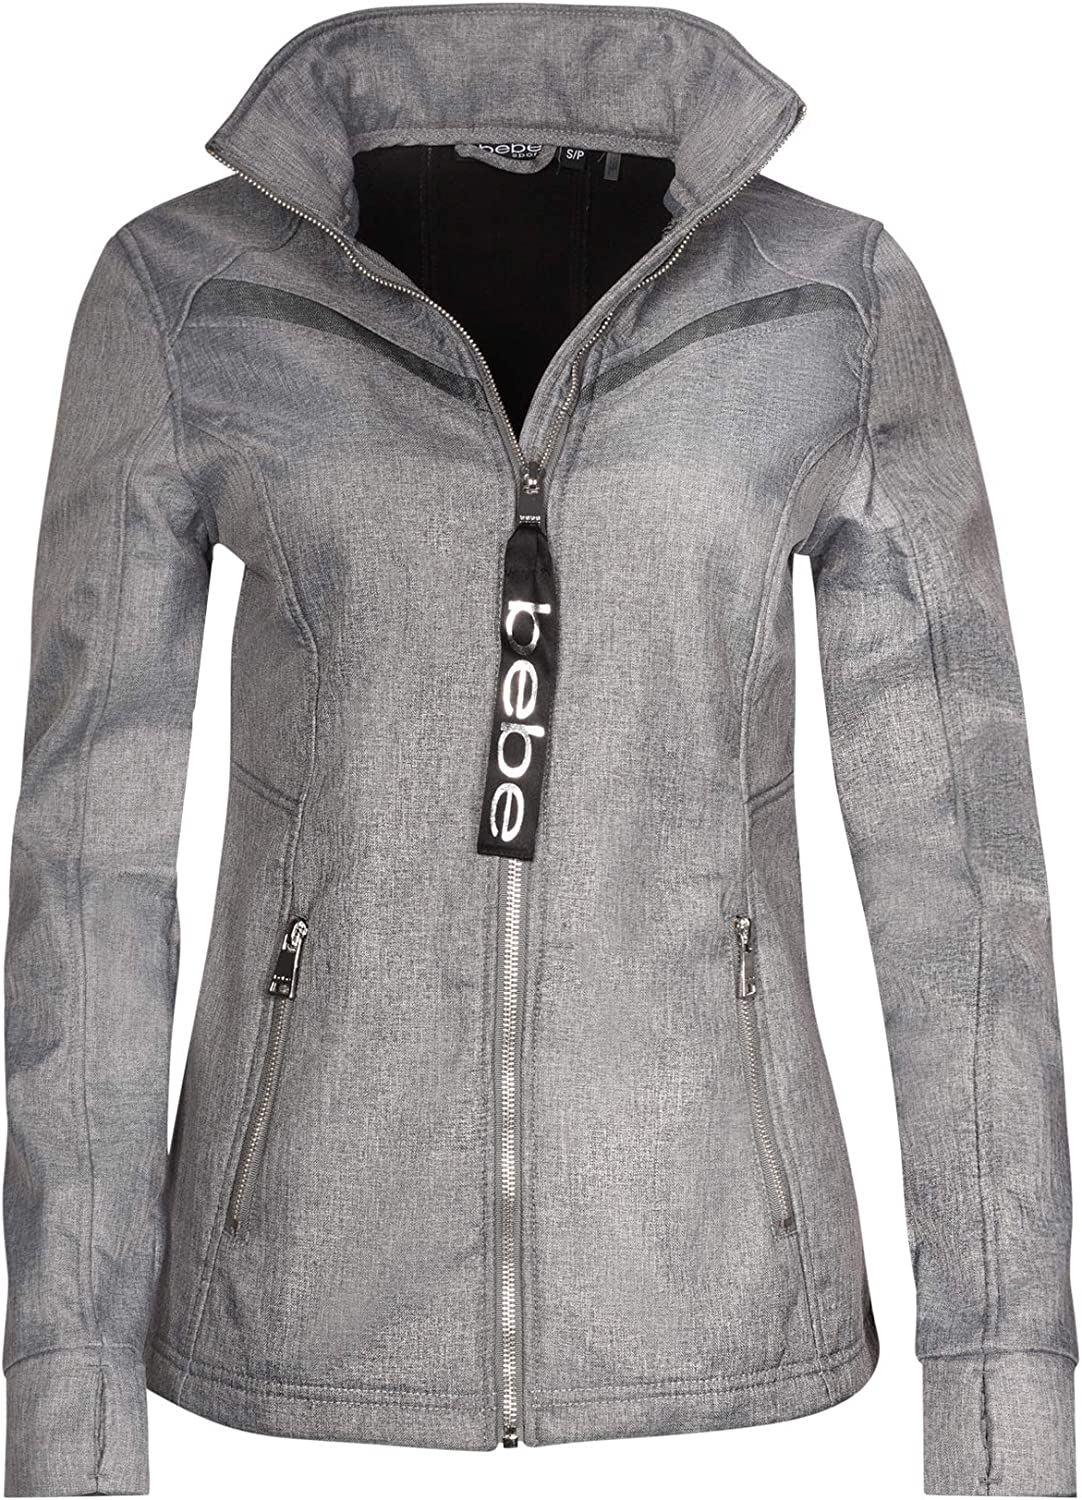 BEBE SPORT Ladies Fleece Lined Soft Shell Jacket with Double Layered Mesh